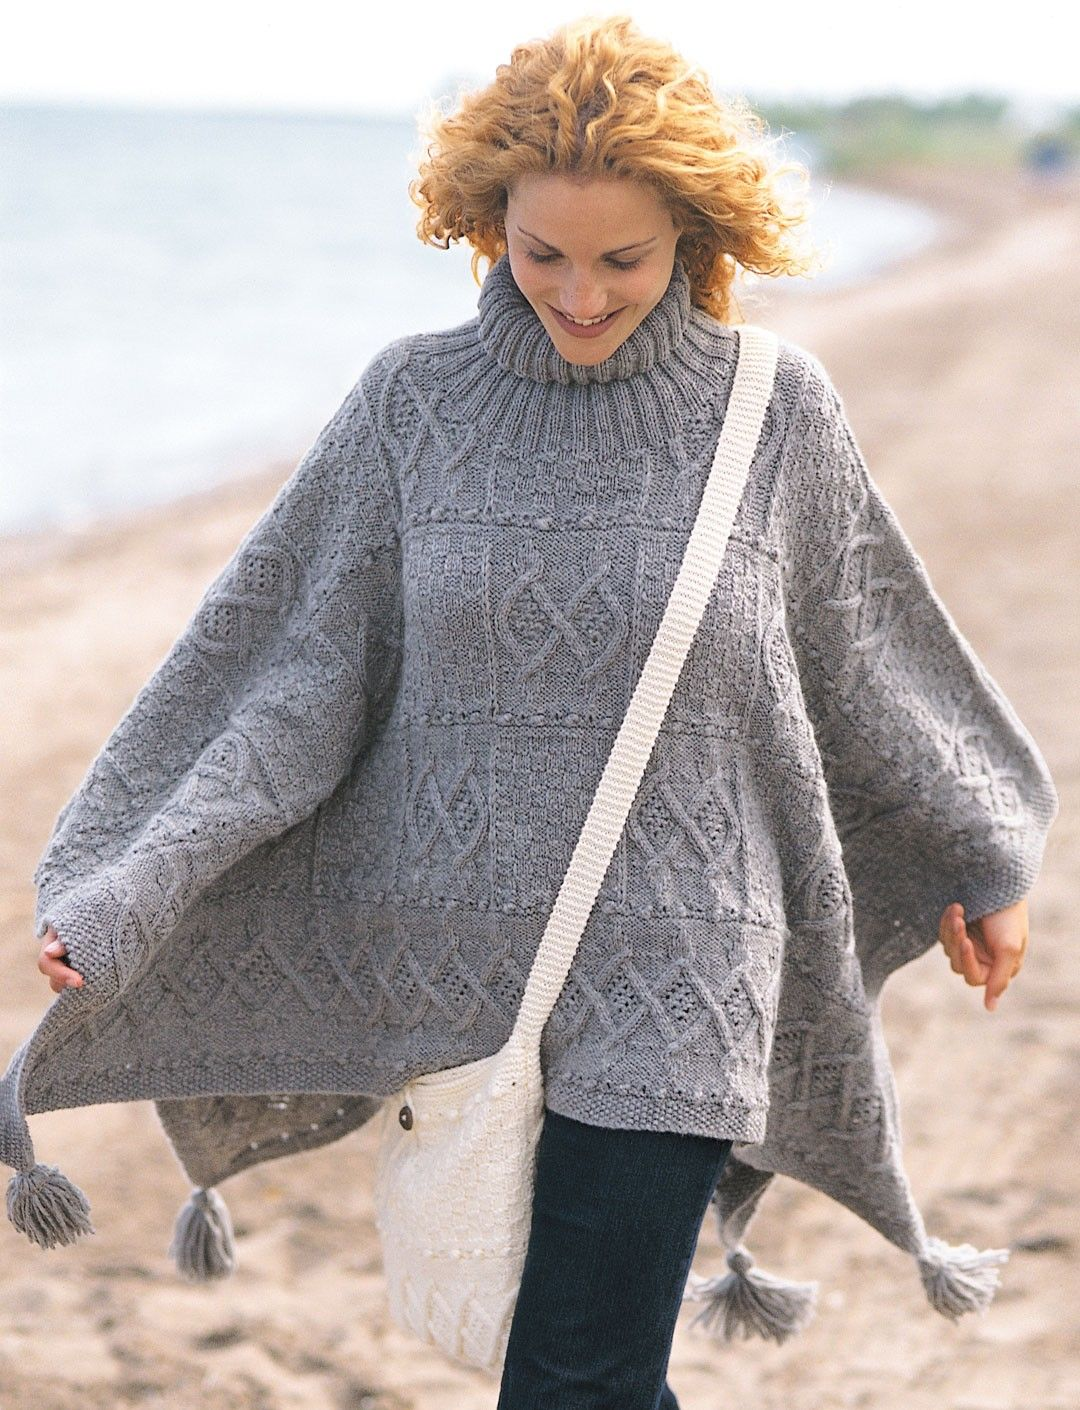 Yarnspirations.com - Patons Blanket Poncho and Bag - Patterns ...